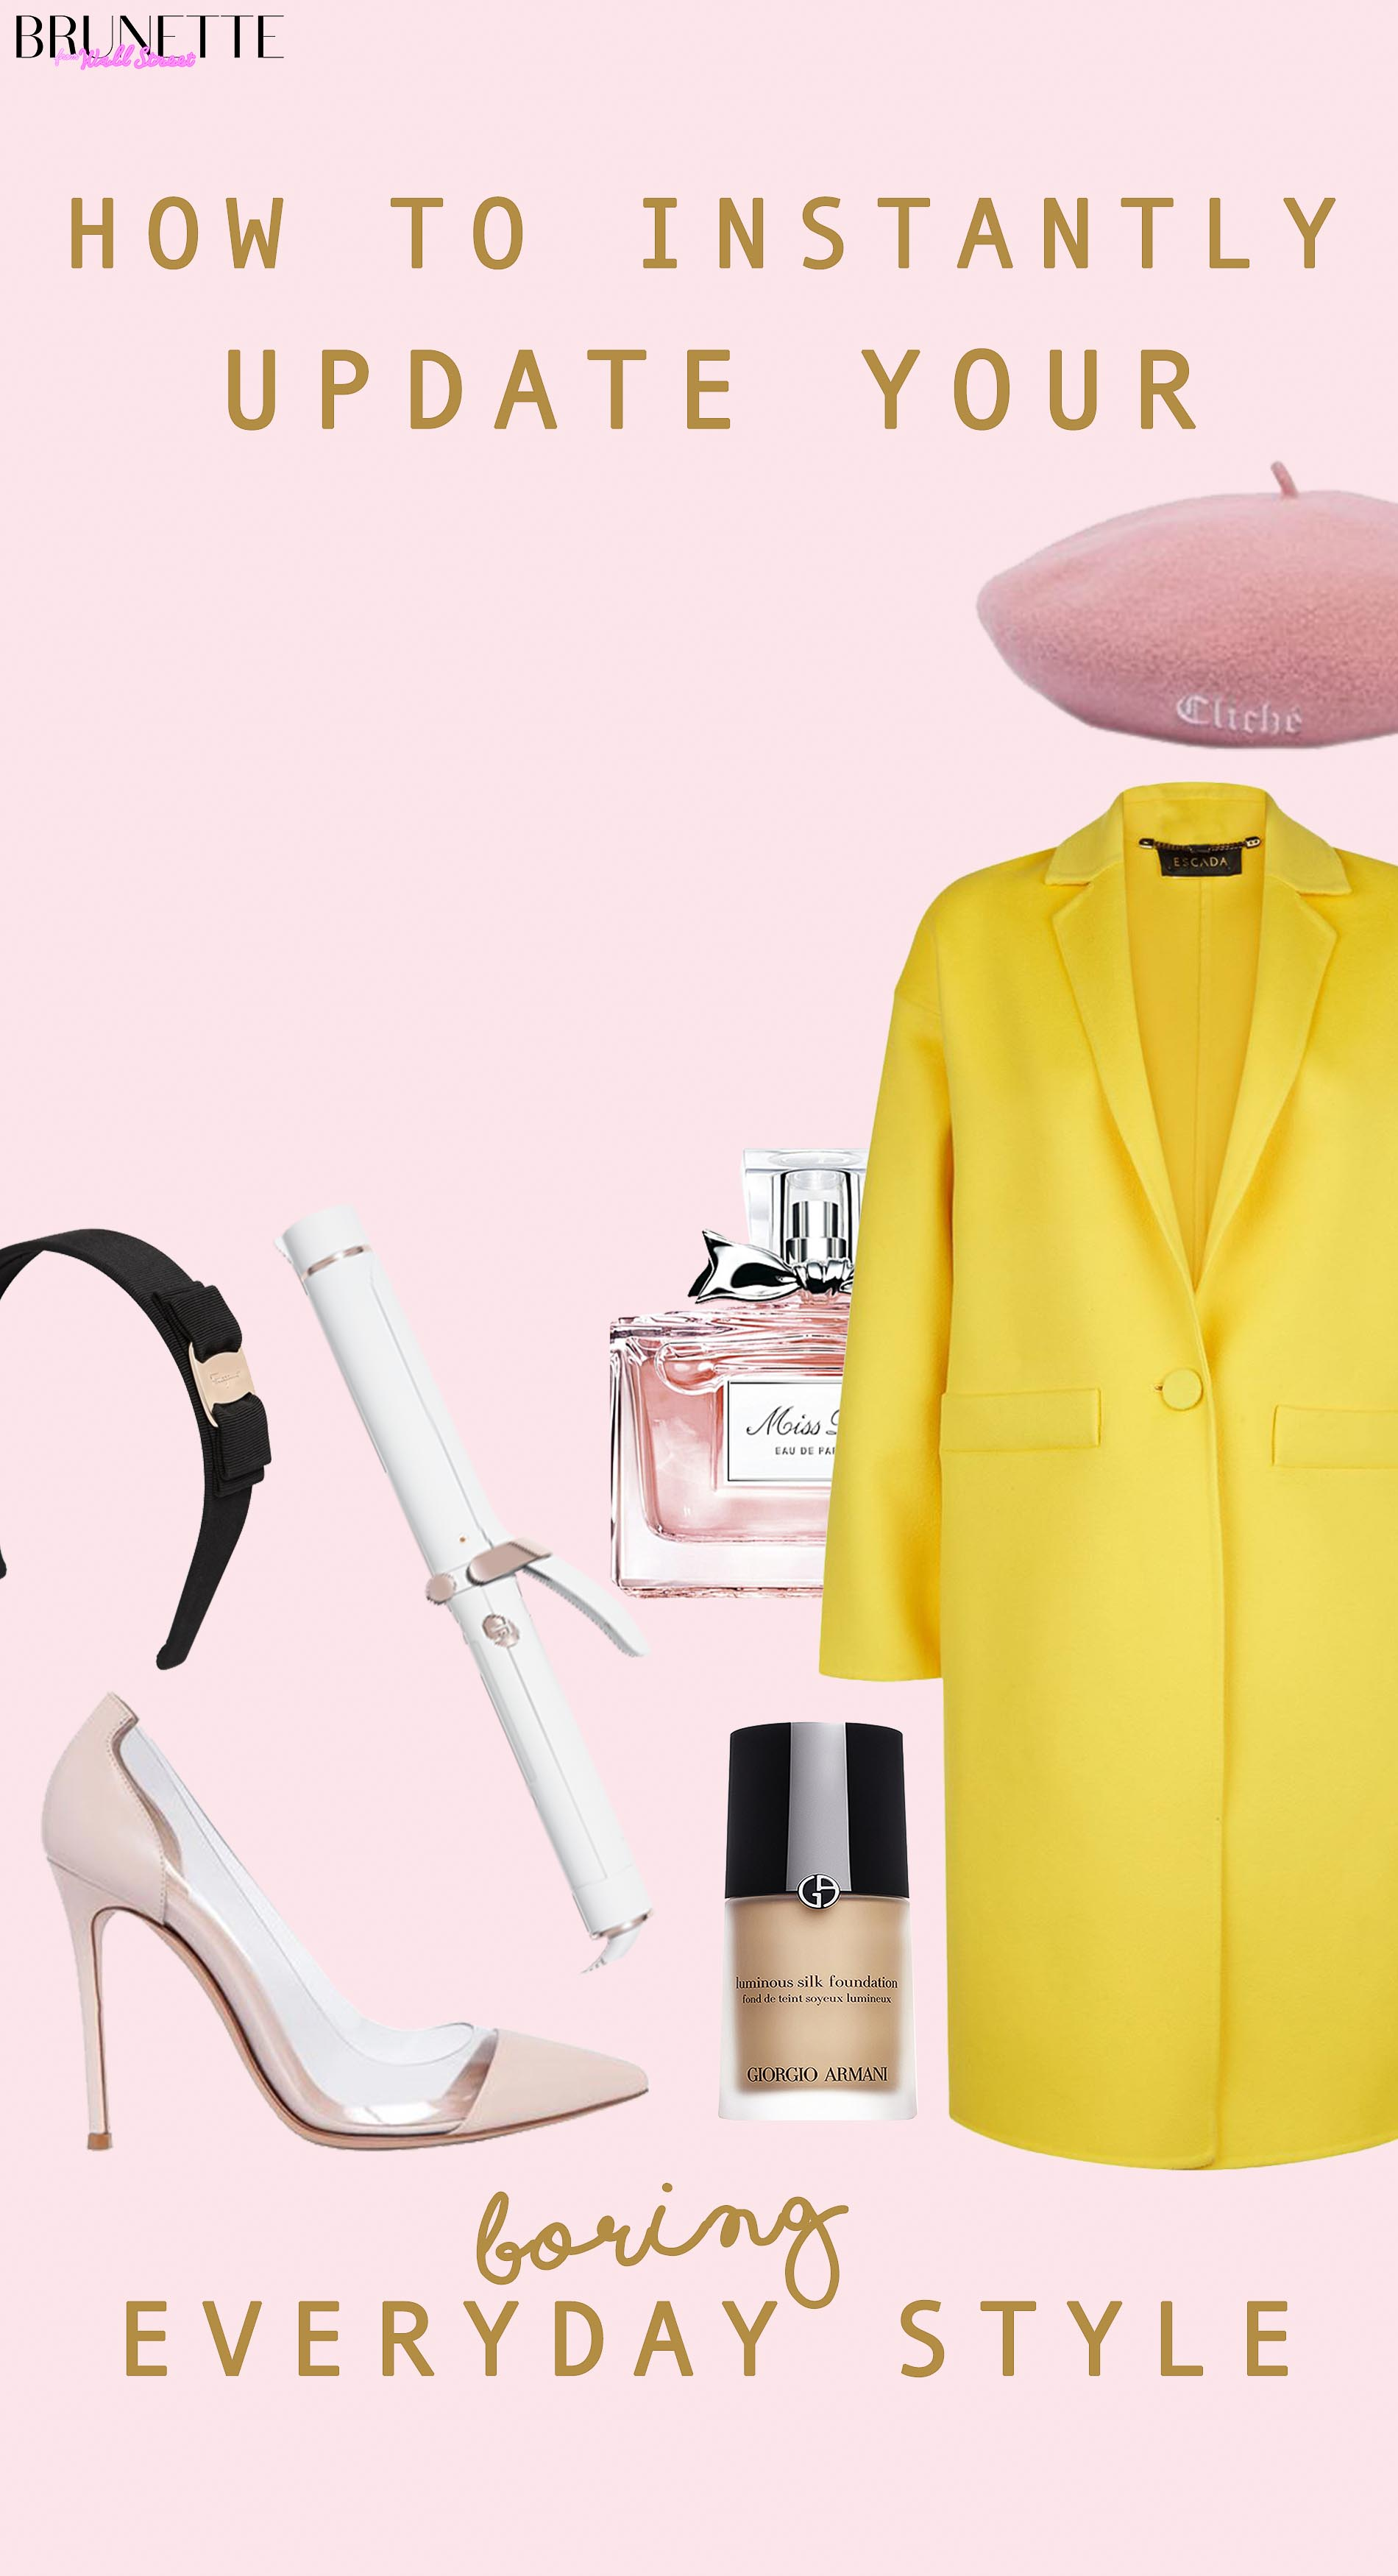 t3 wand, Escad yellow coat, Miss Dior Prefume, Giorgio Armani foundation, plexi heels with text overlay #5 Things that will instantly uplift your everyday outfit